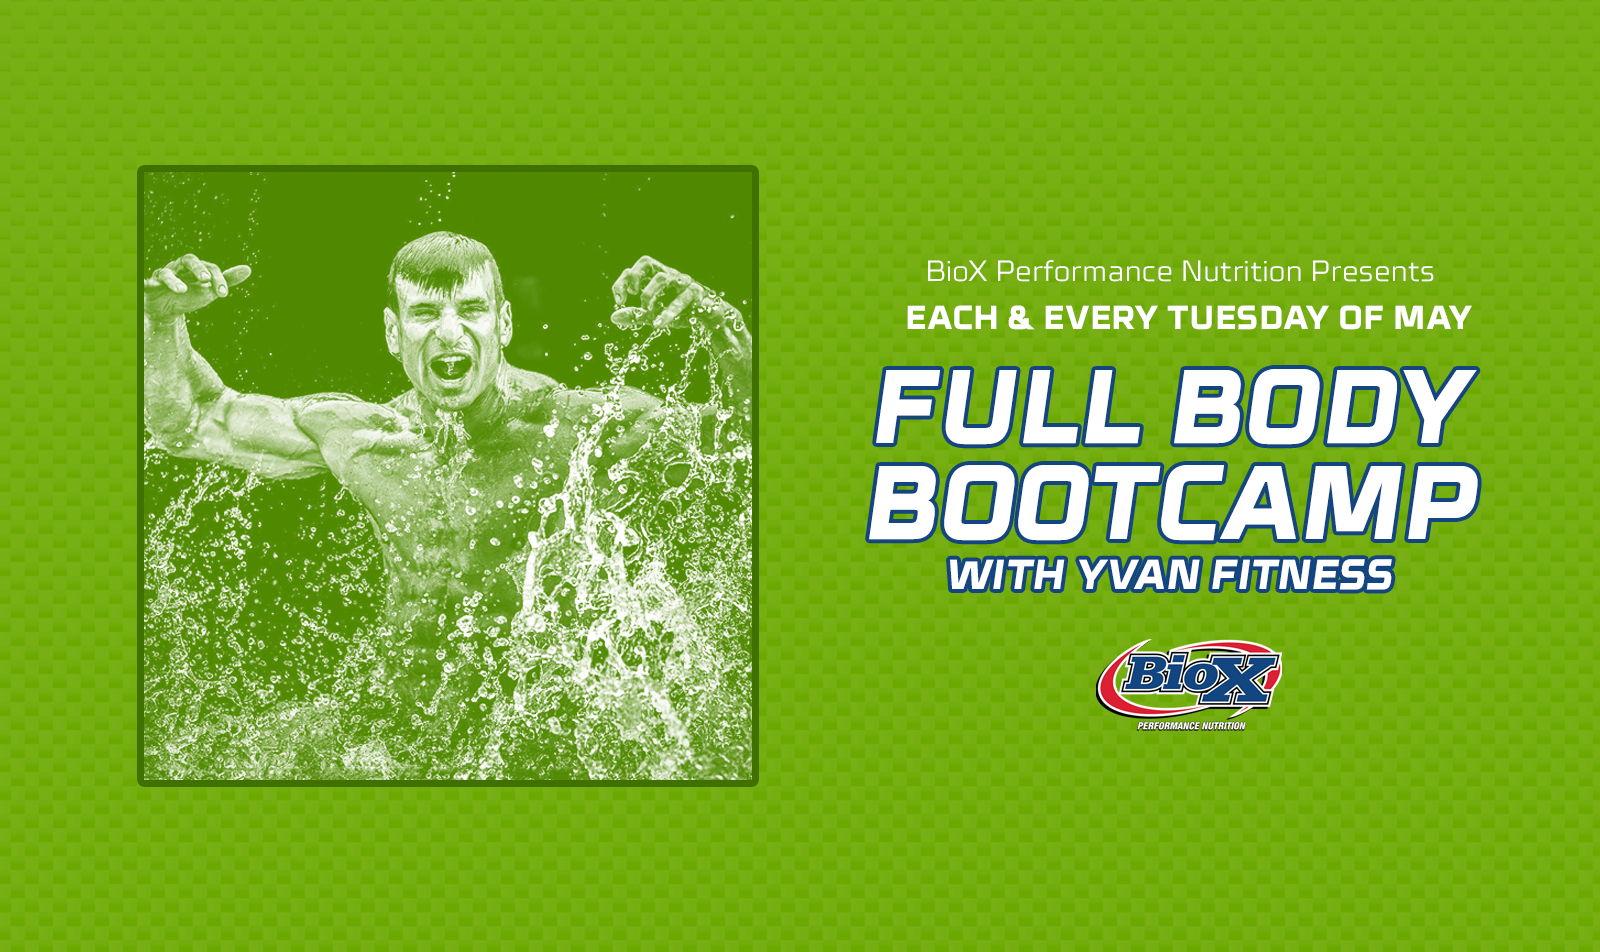 Full Body Bootcamp with Yvan Cournoyer Continues